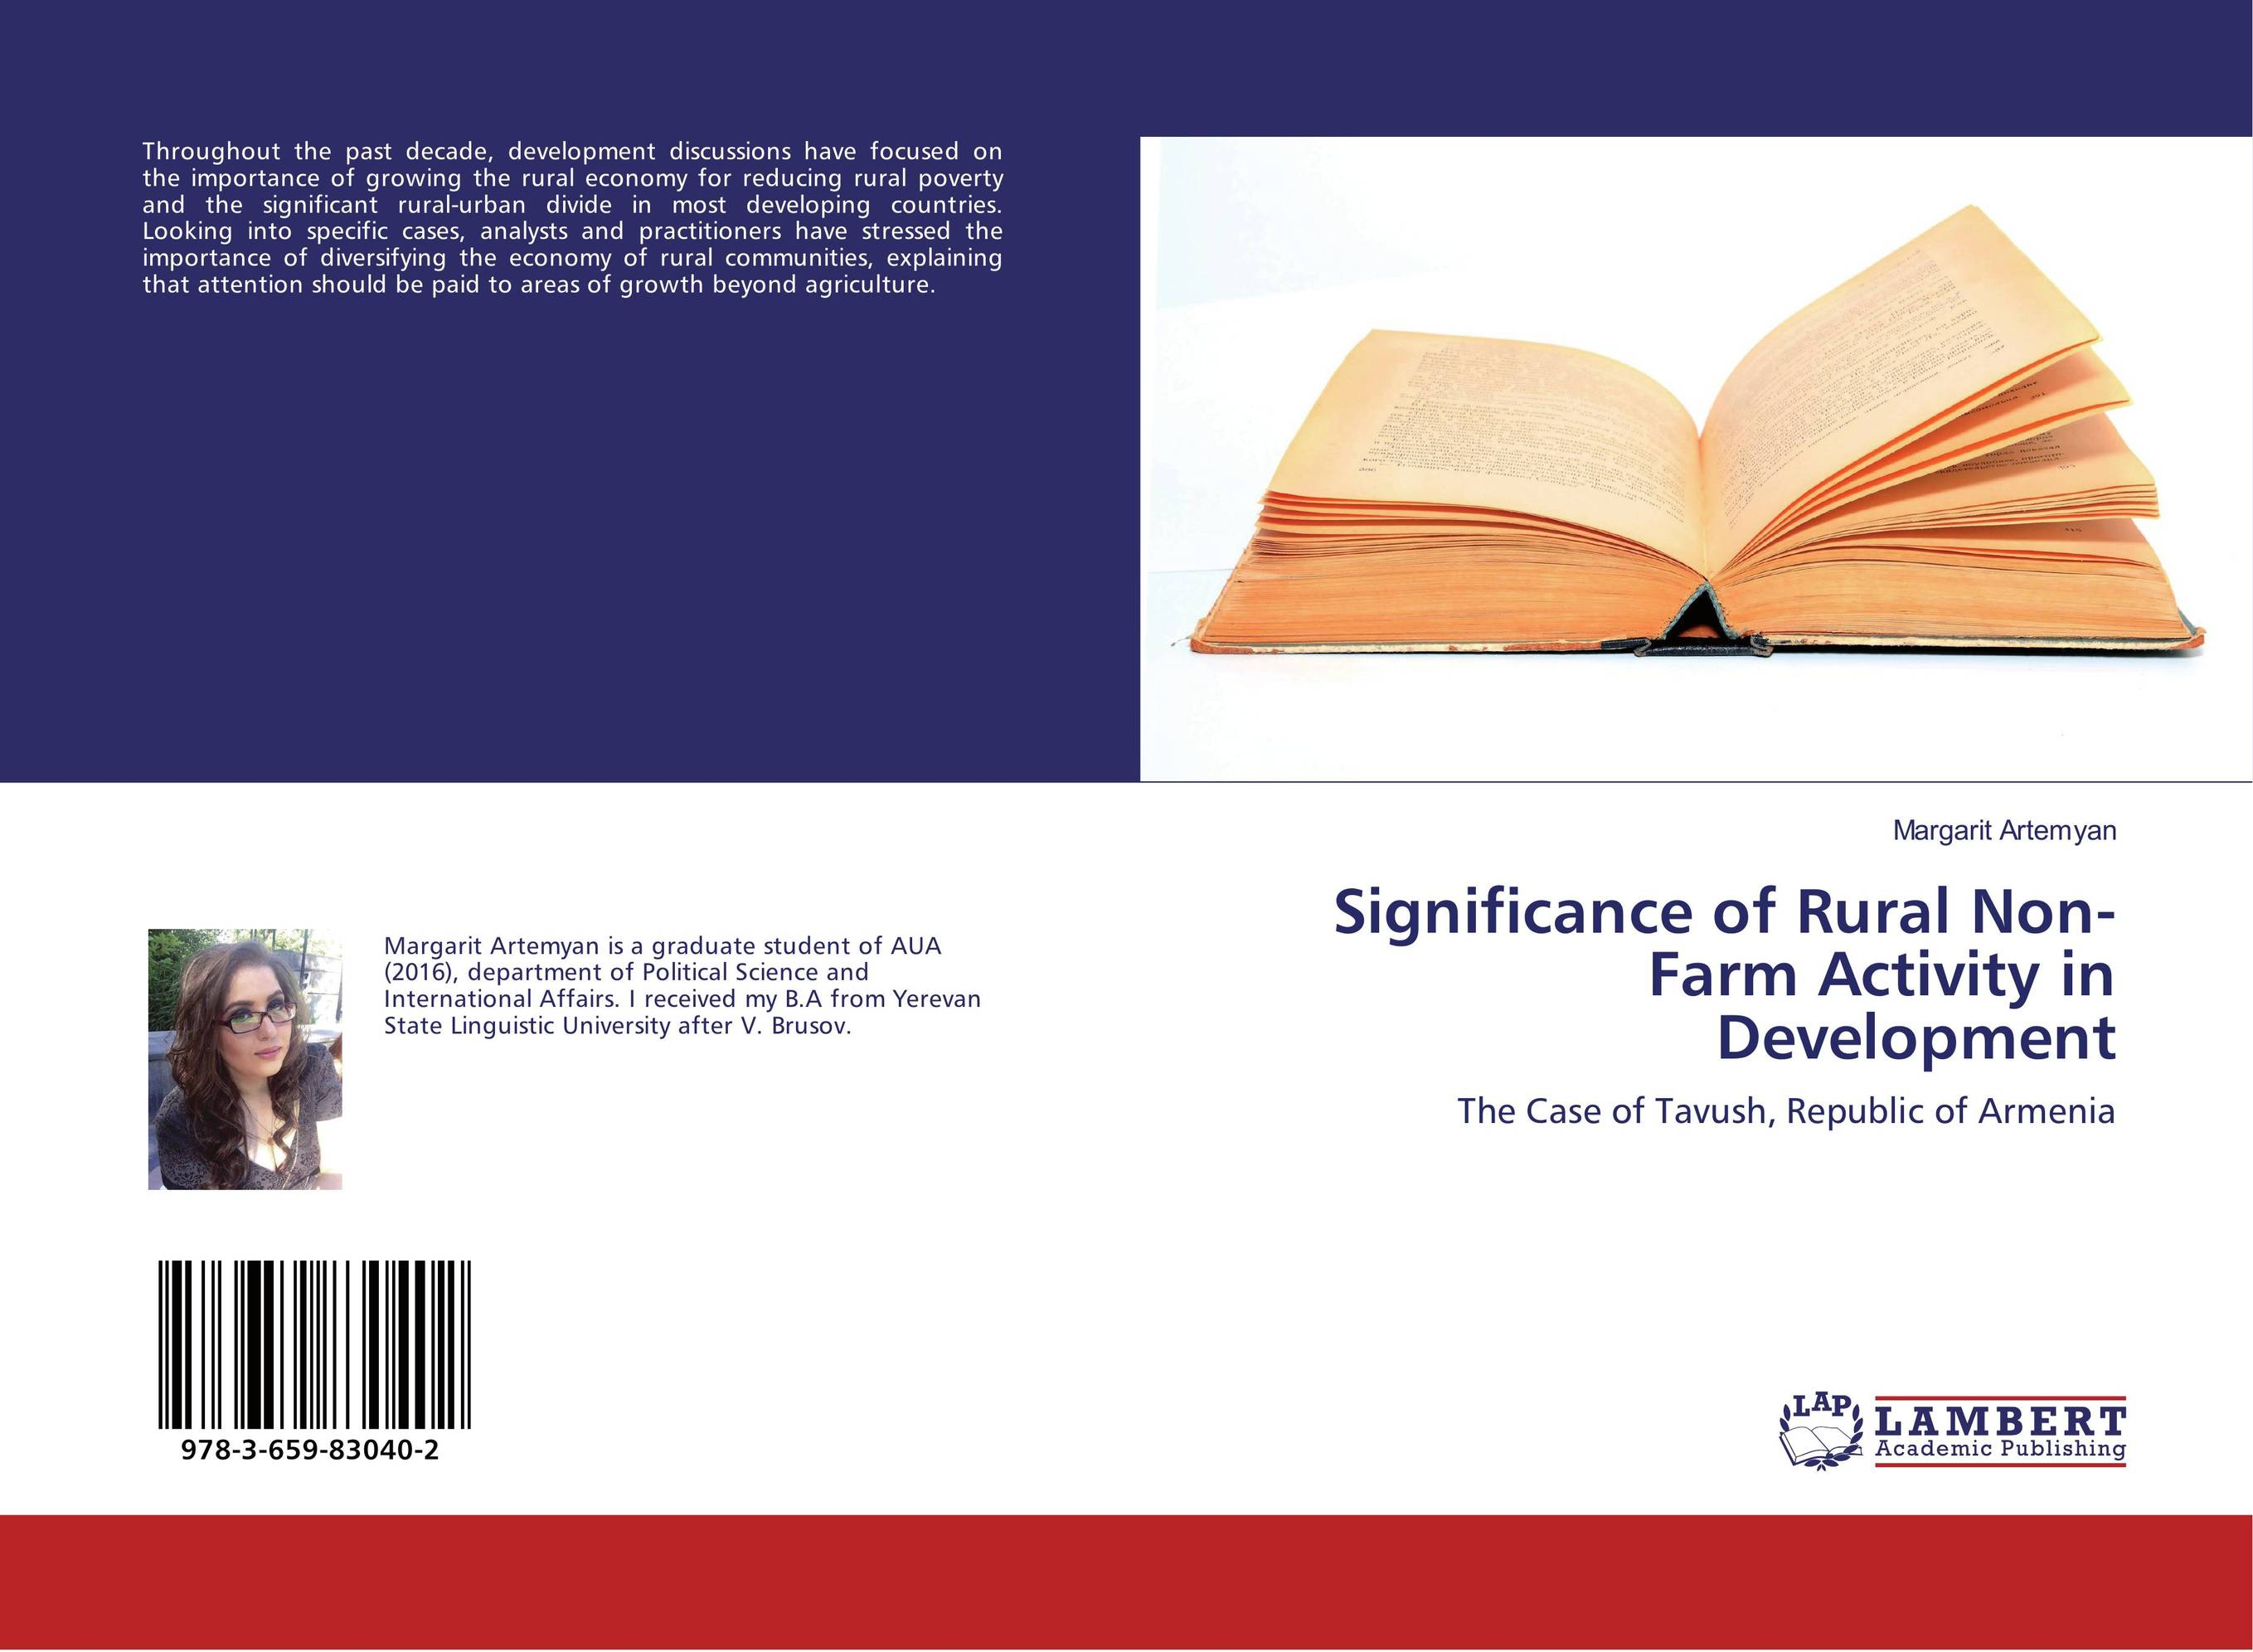 Significance of Rural Non-Farm Activity in Development restructuring agriculture and adaptive processes in rural areas